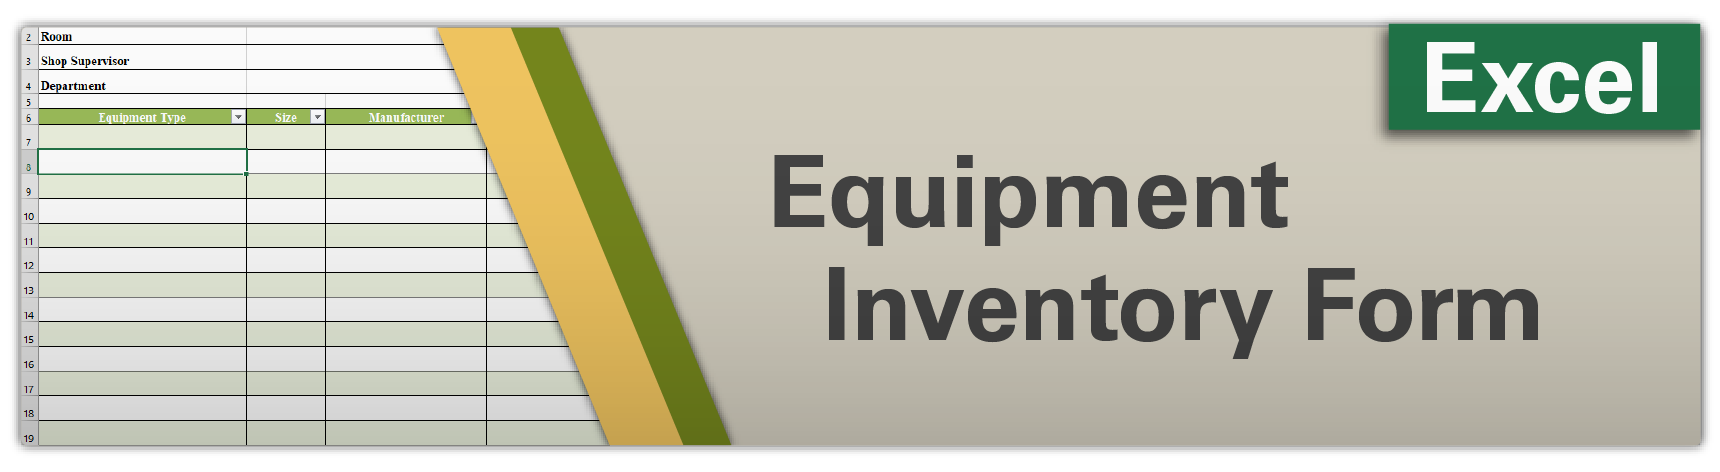 Equipment Inventory Form